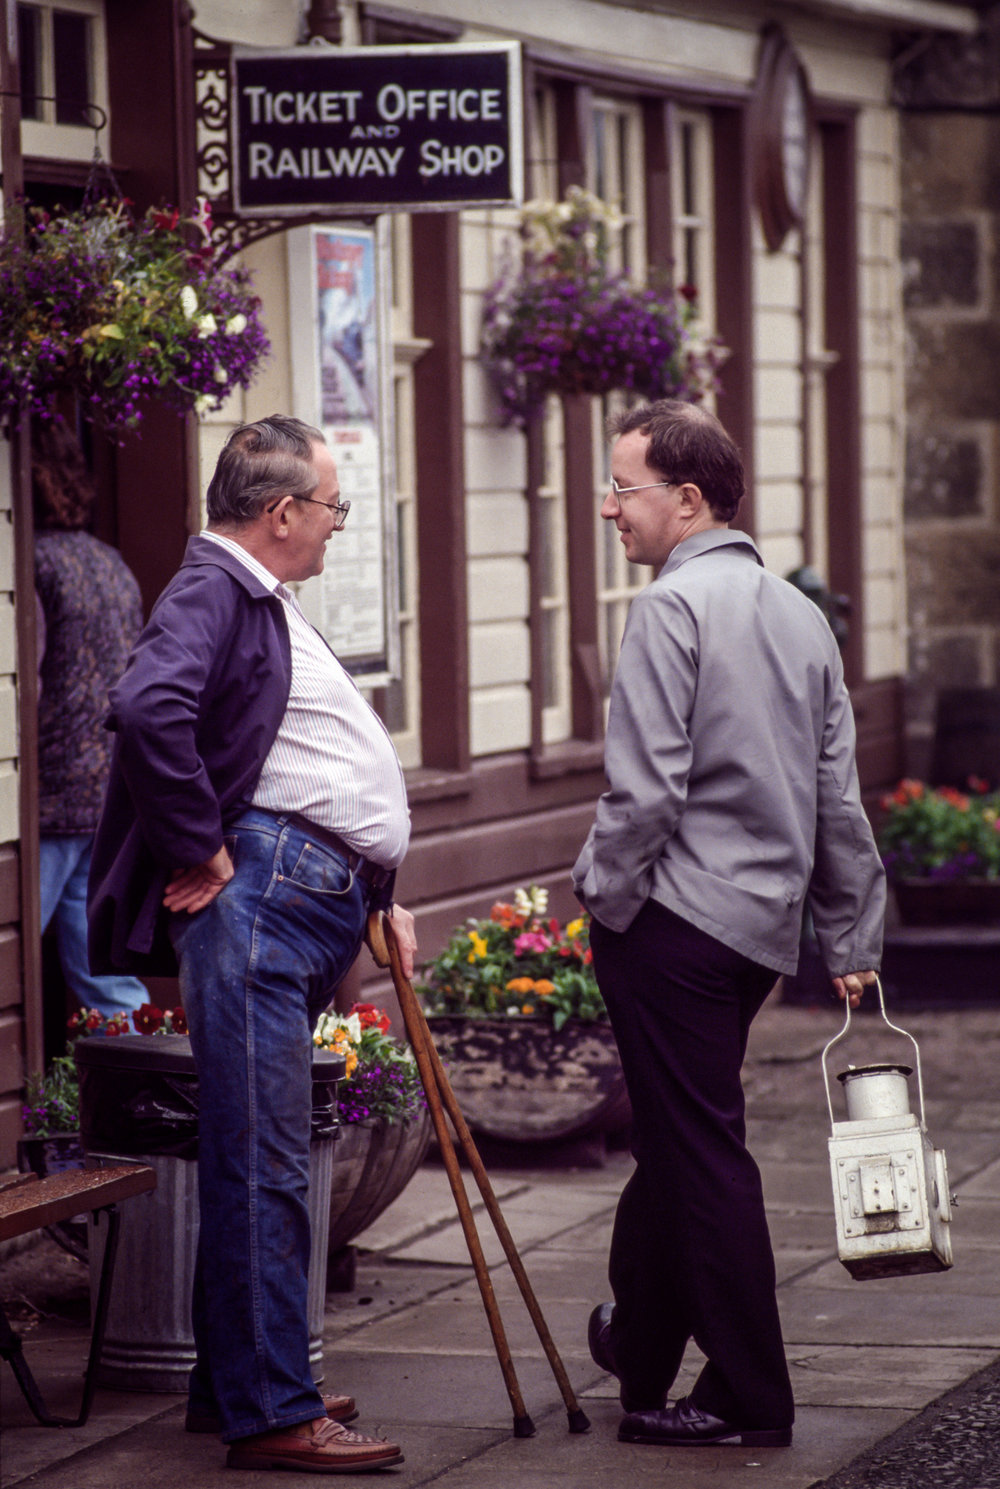 A ticket salesman and conductor talk outside the Strathspey Railway station in Aviemore, Scotland